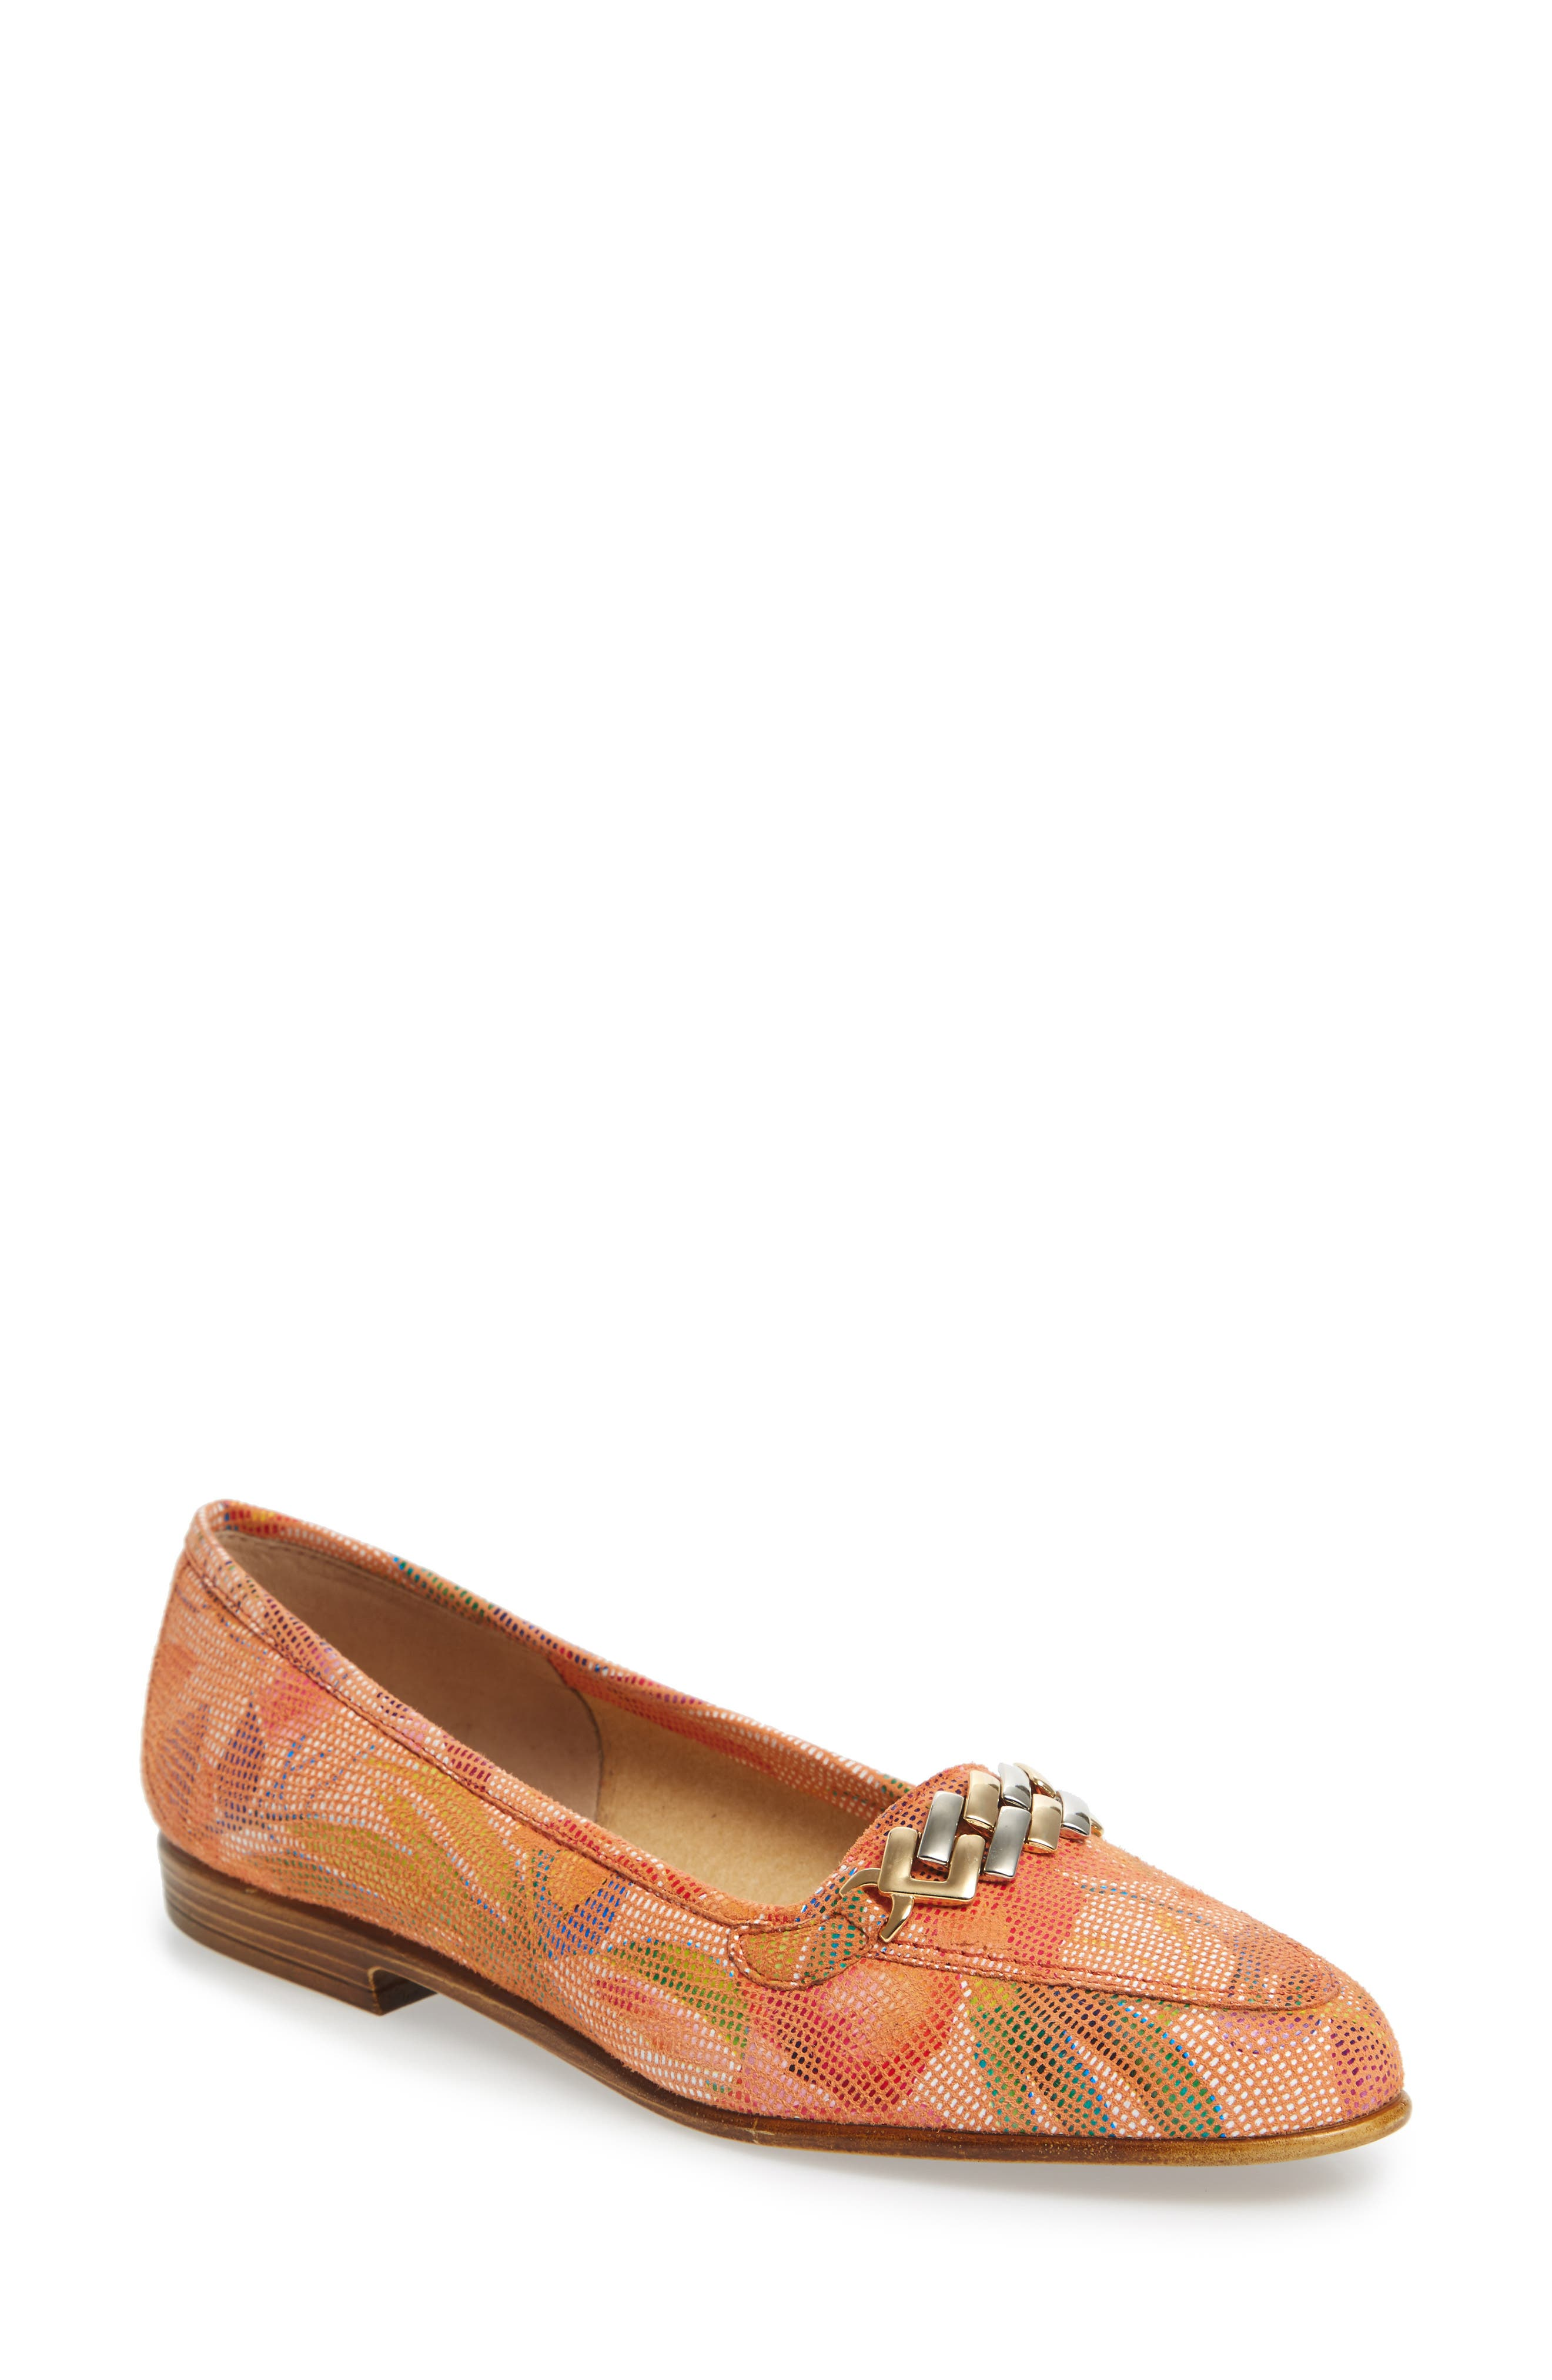 Oste Loafer,                             Main thumbnail 1, color,                             Salmon Leather